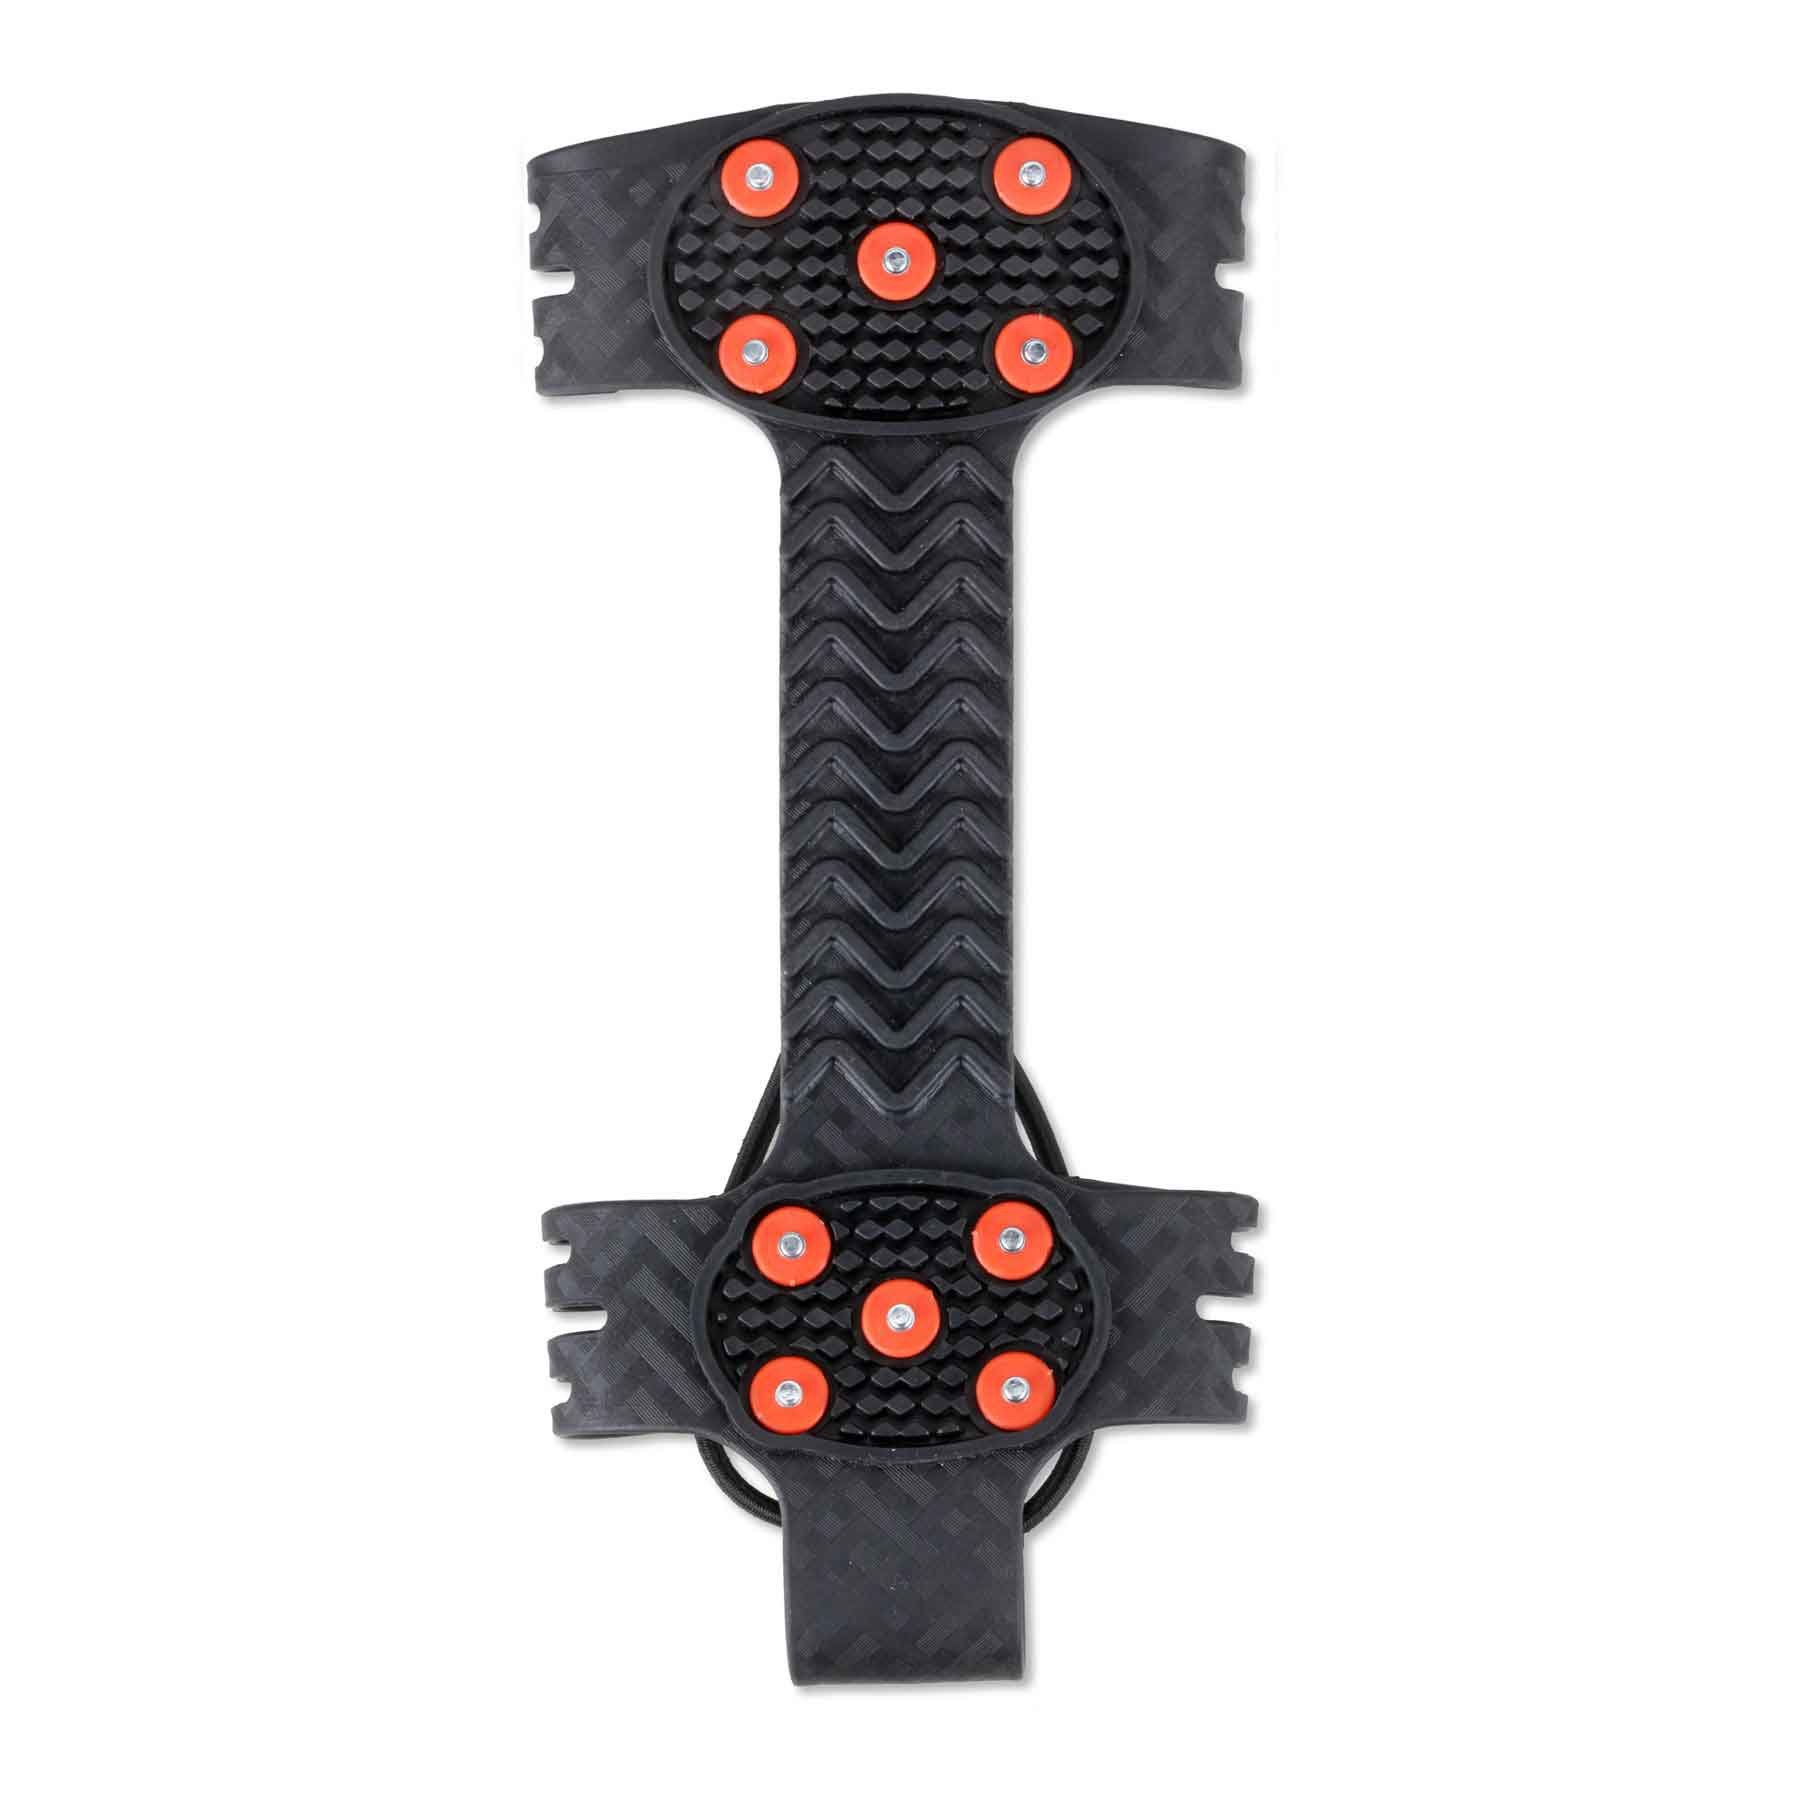 Ergodyne TREX 6310 Adjustable Traction Cleat Grips Ice and Snow, One-Piece Easily Attaches Over Shoe/Boot with Carbon Steel Spikes to Provide Anti-Slip Solution, Large